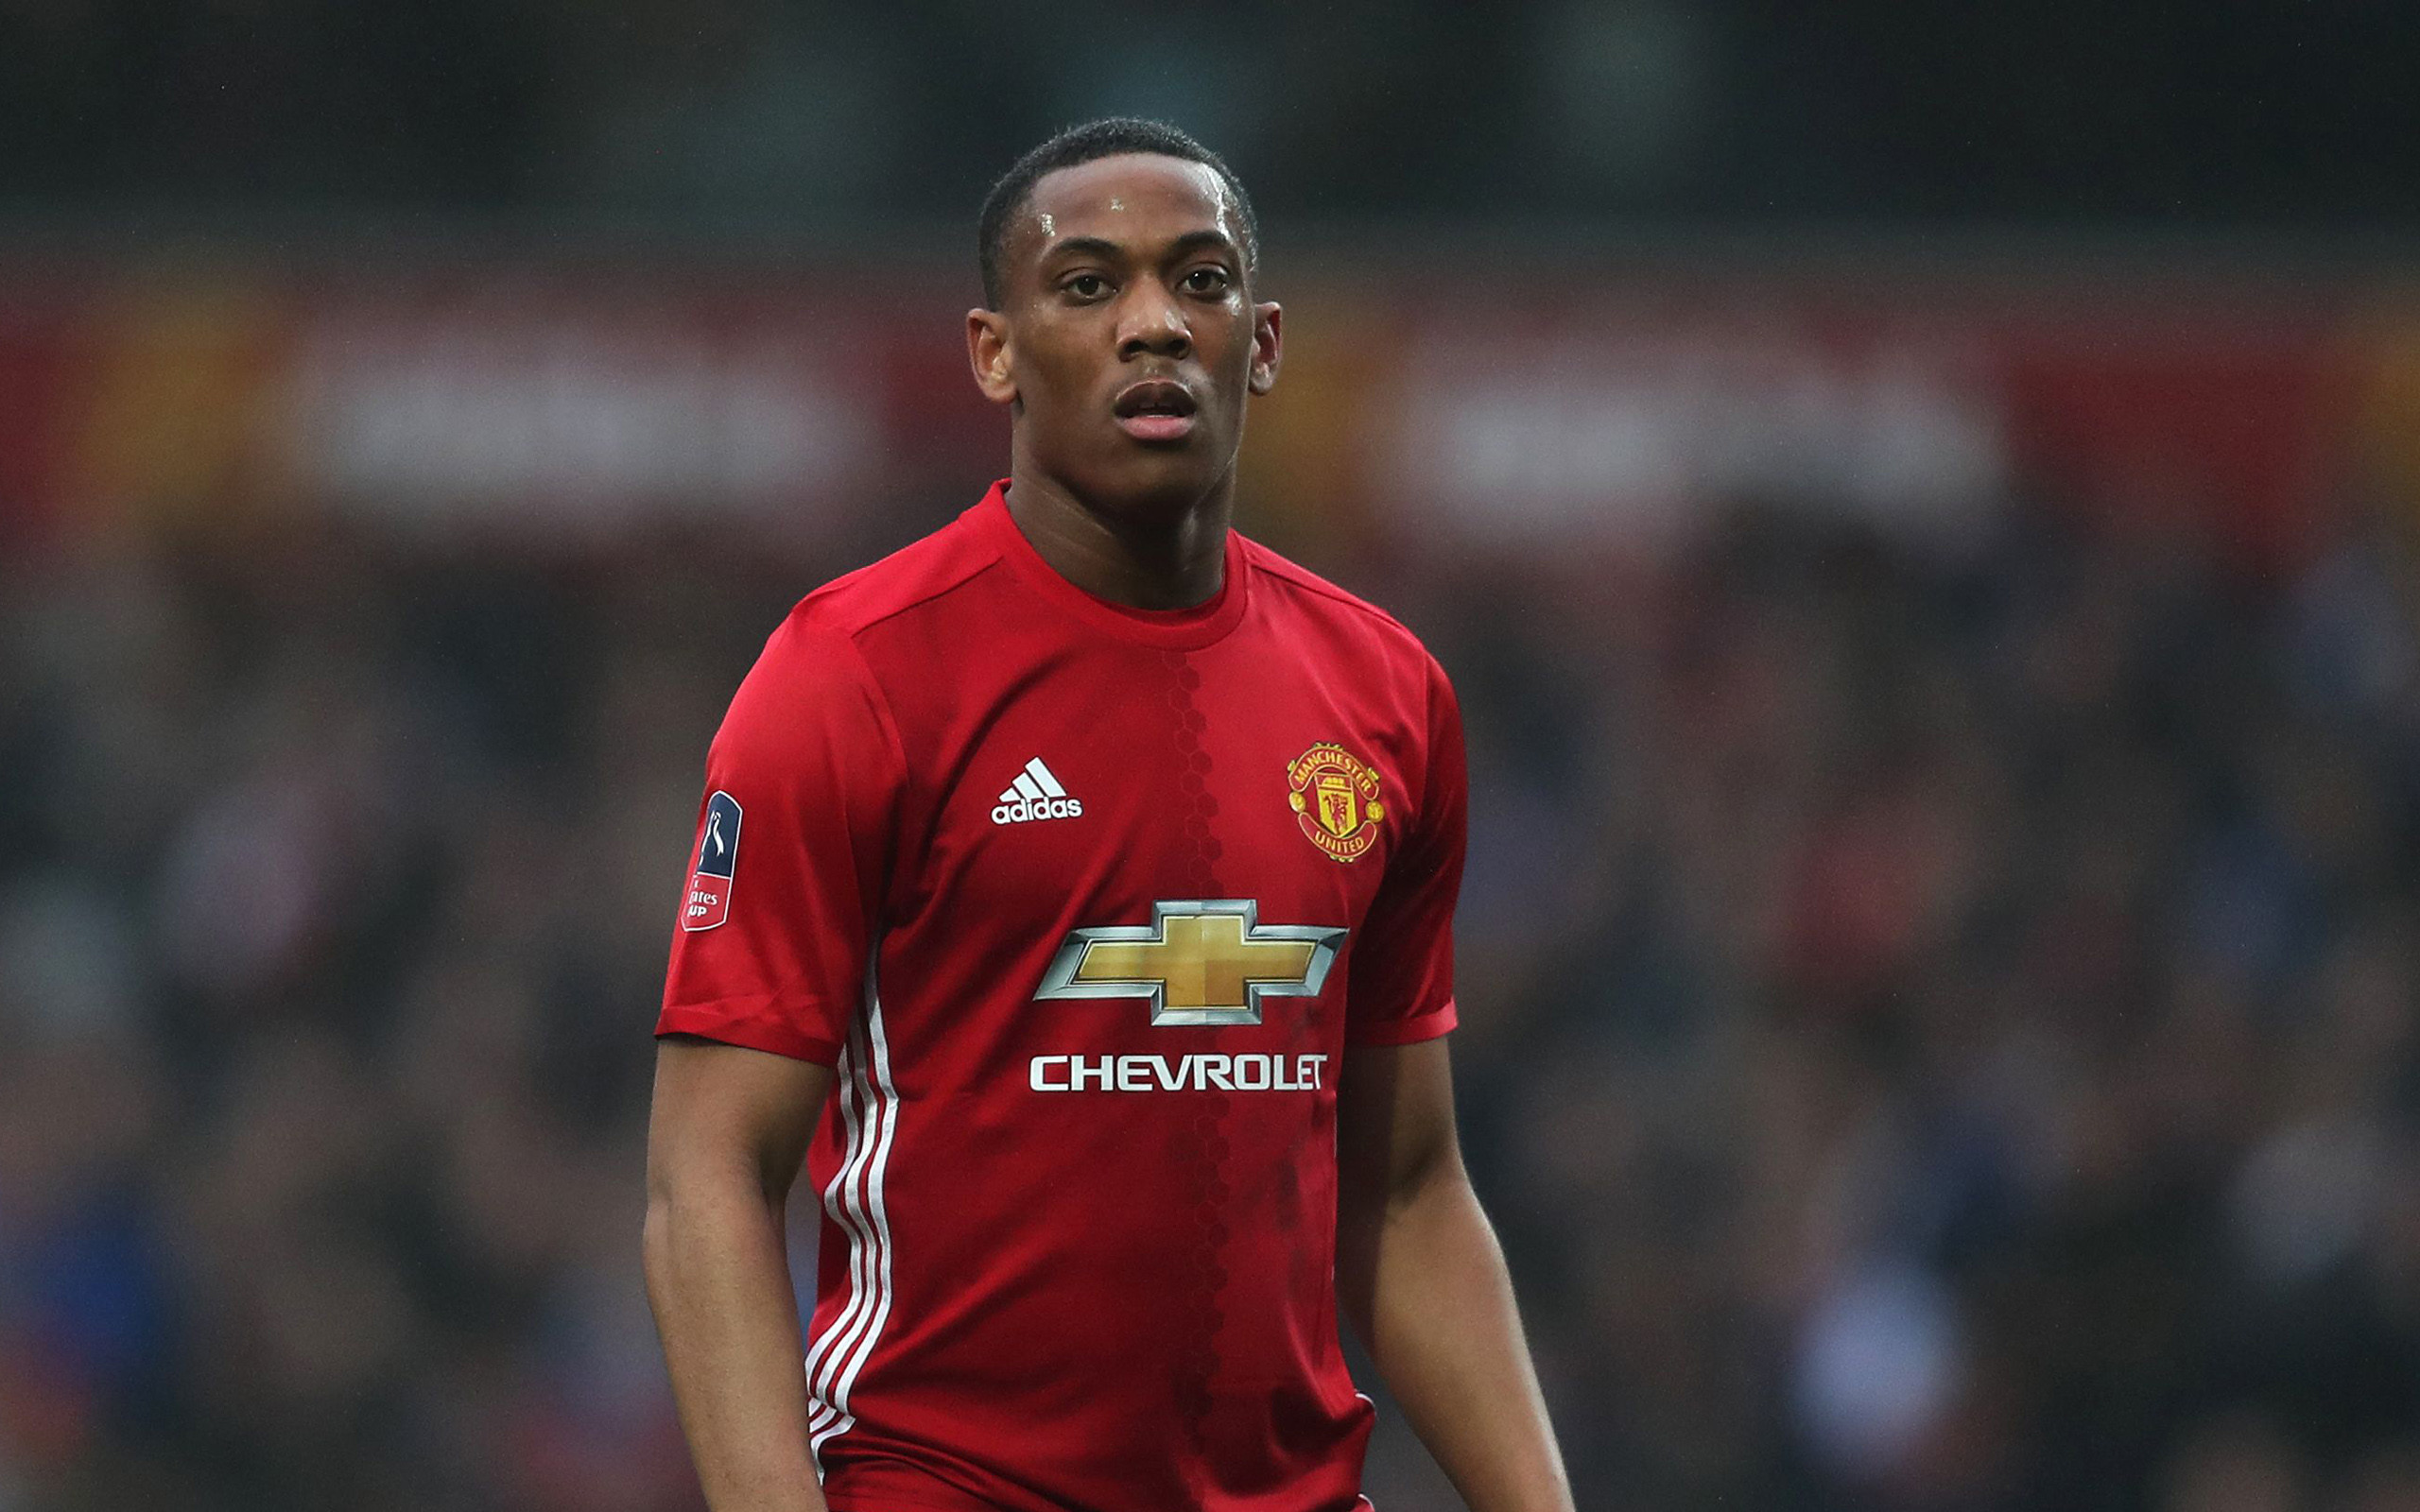 [41+] Anthony Martial Wallpapers On WallpaperSafari